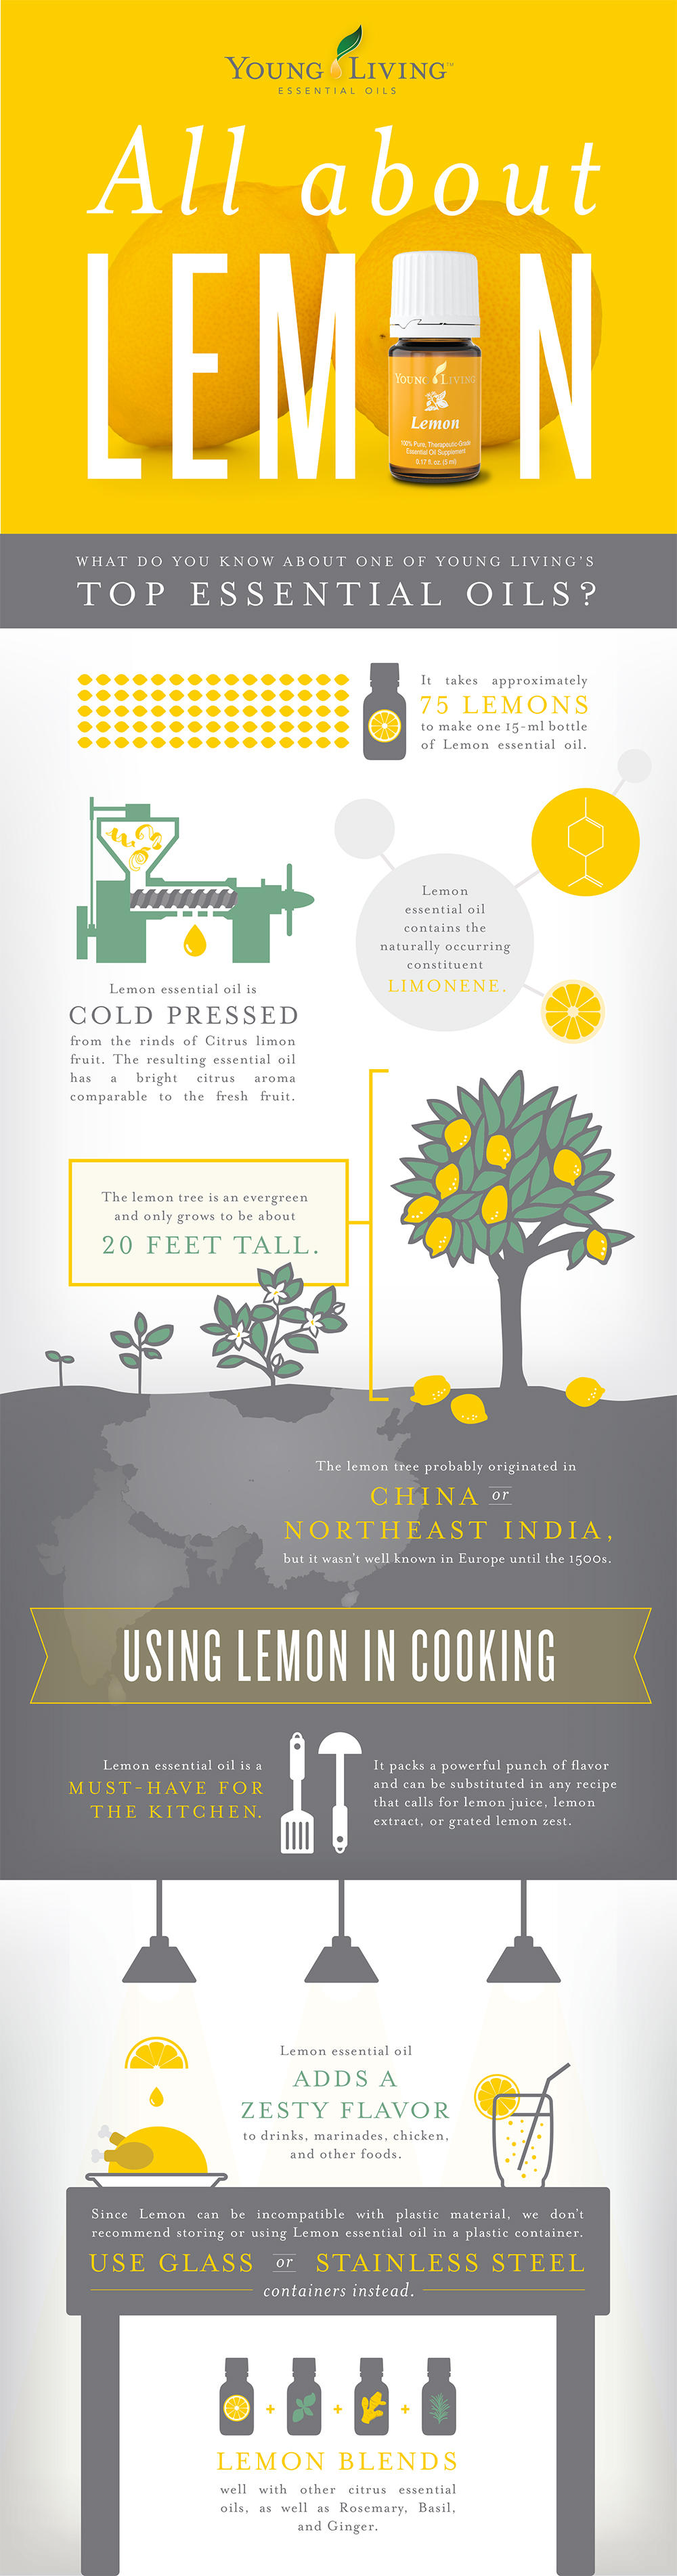 lemon-infographic-final.jpg